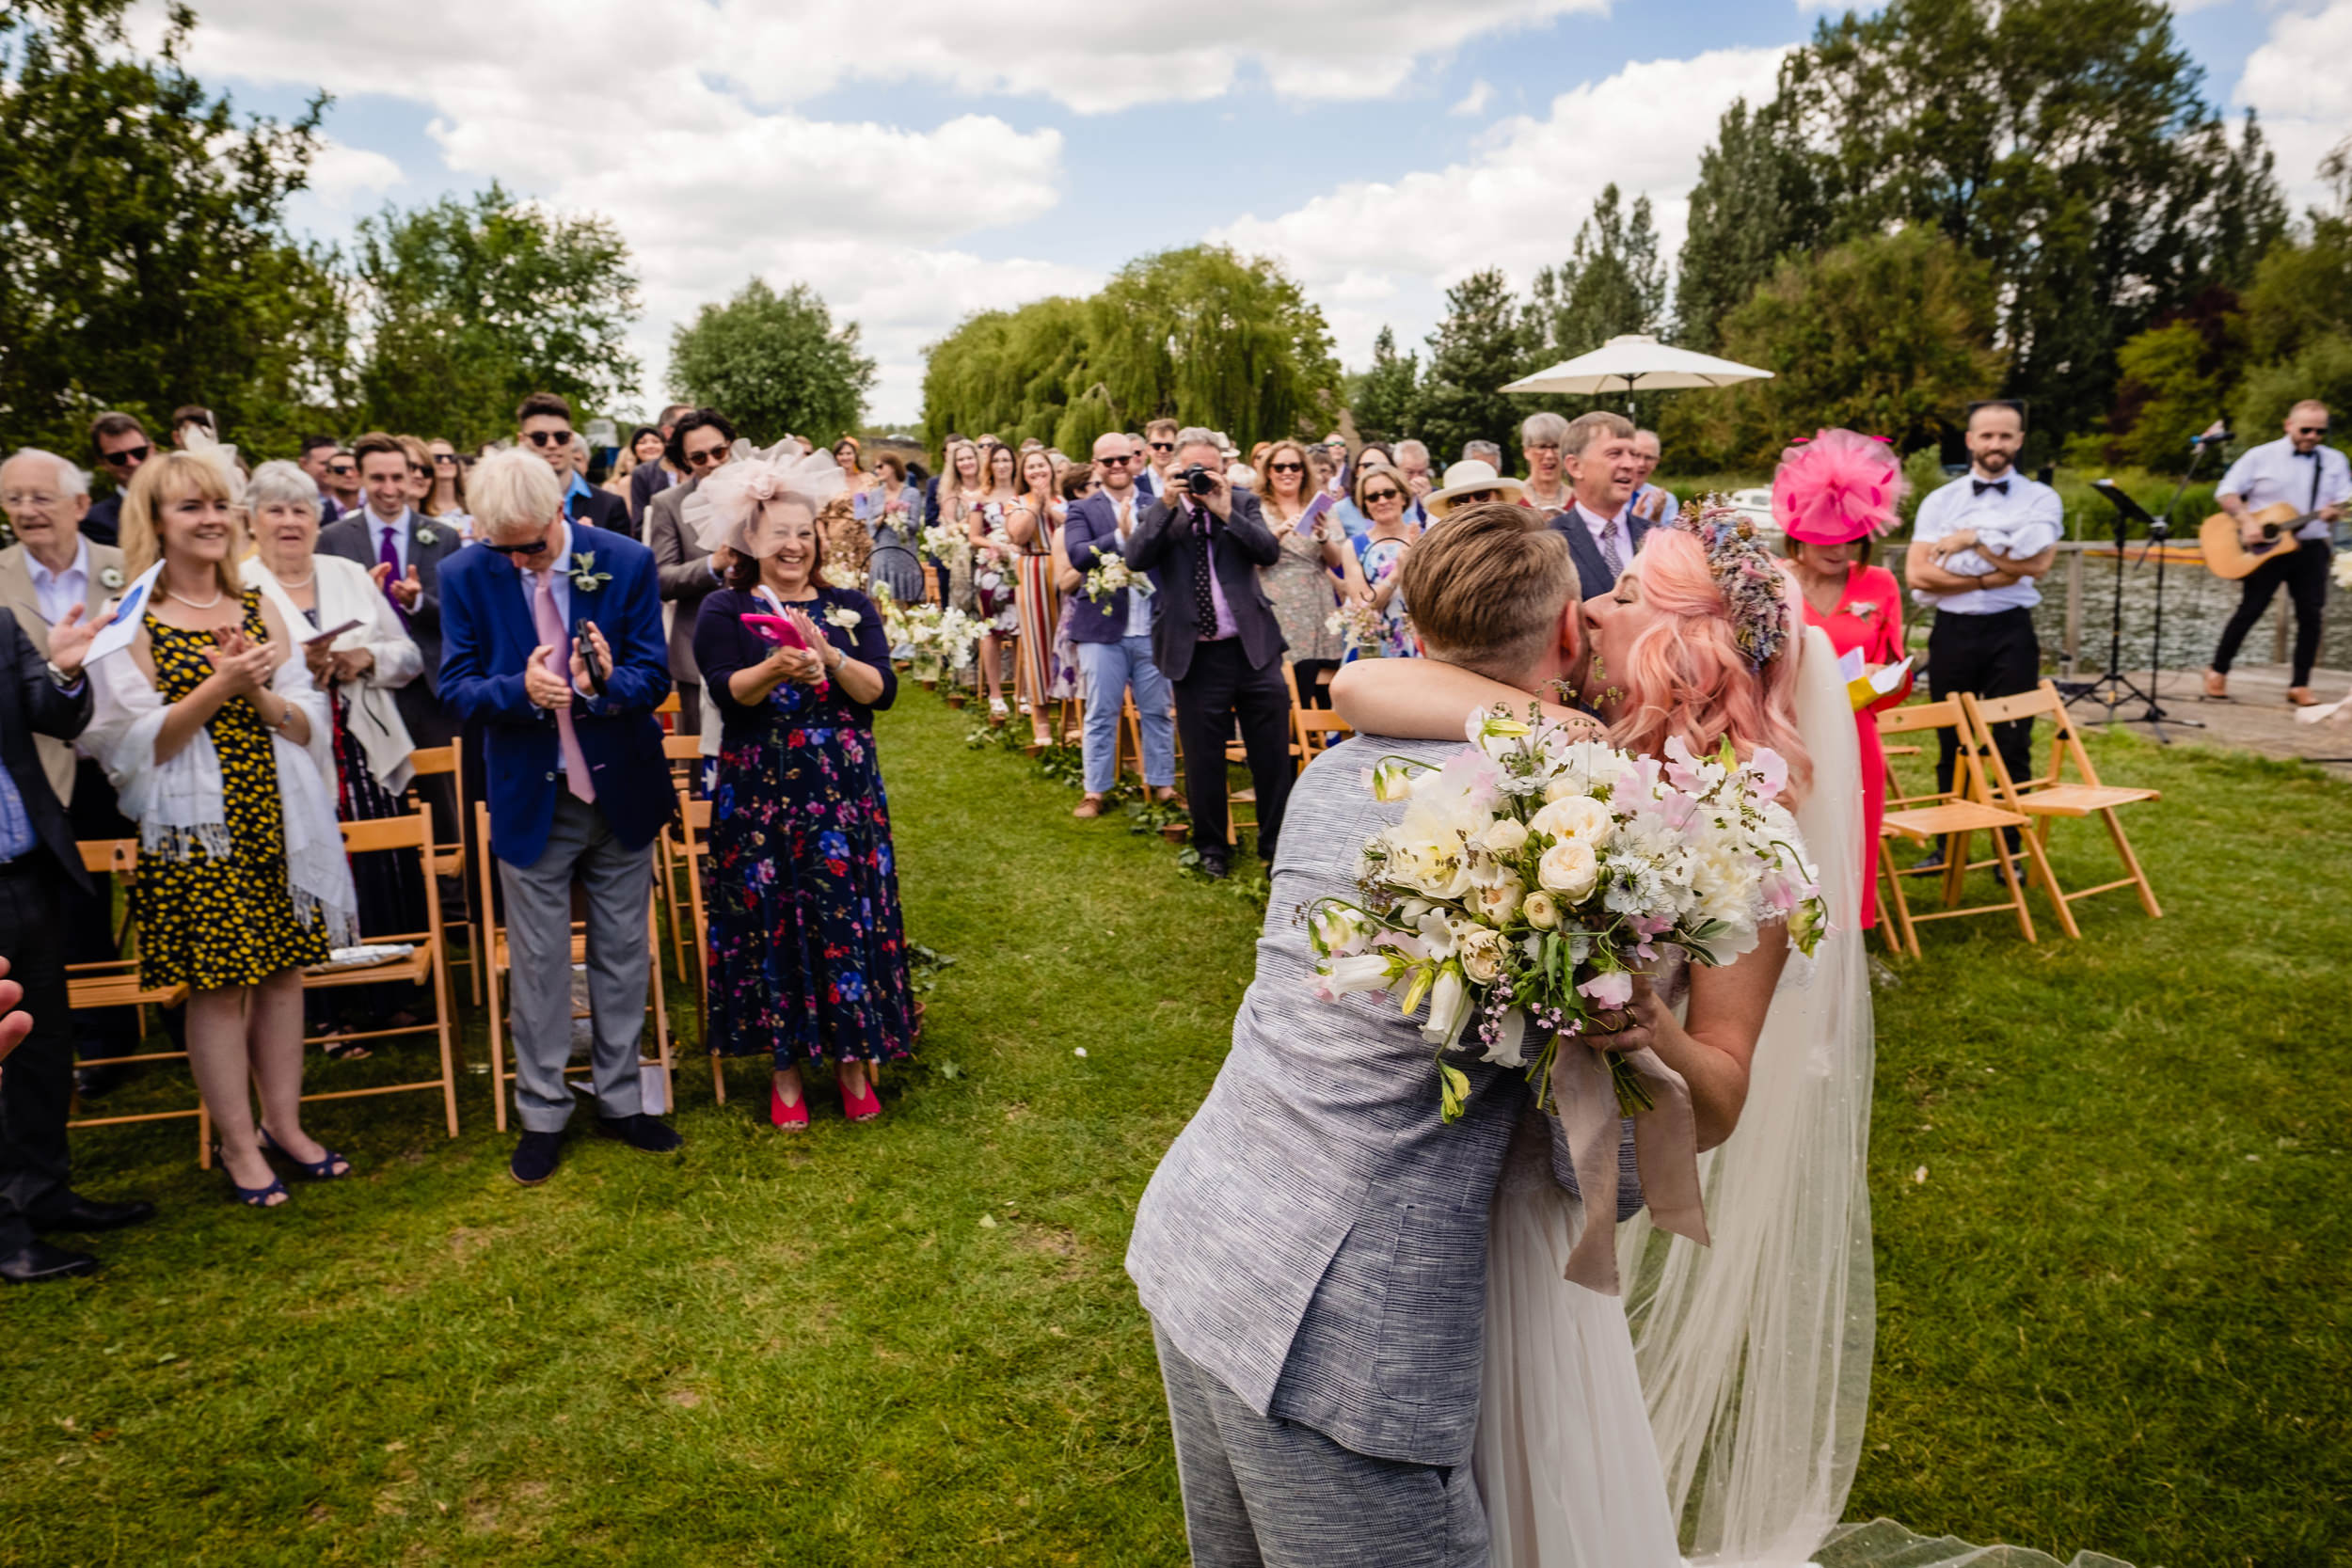 first kiss at wedding as guests applaud. maybush wedding co wedding photography by emma and rich.